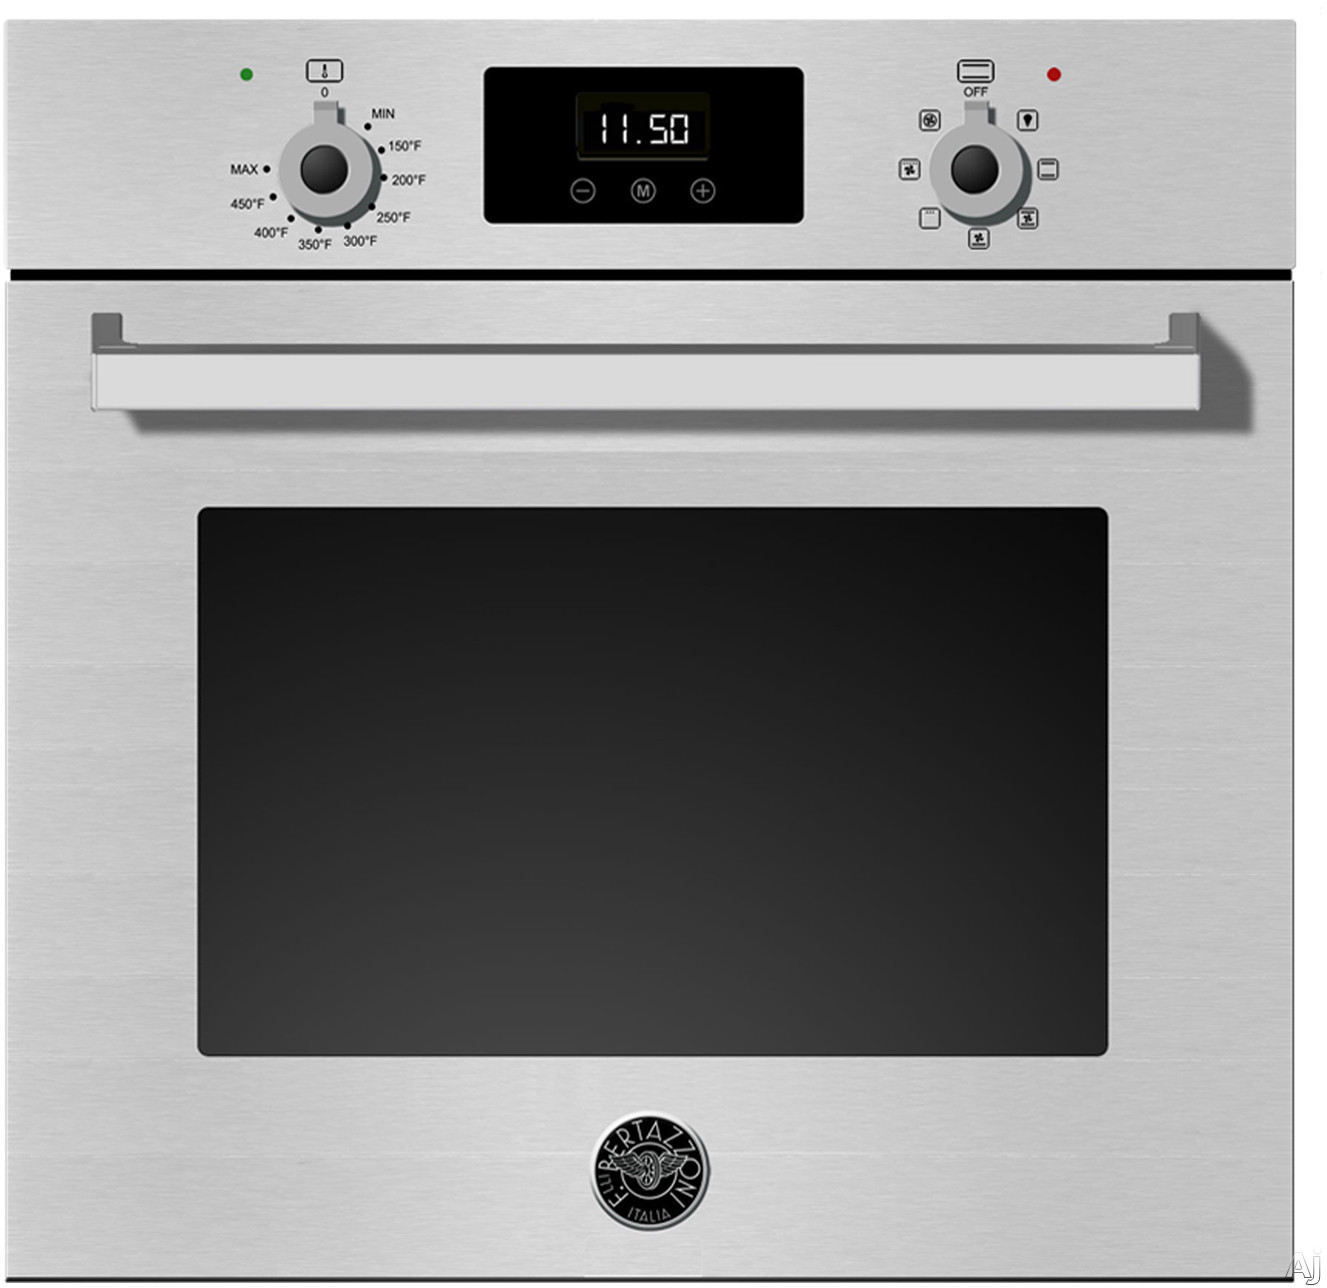 Bertazzoni Professional Series PROFS24XV 24 Inch Single Electric Wall Oven with Convection, Turbo, Touch Controls, LED Display, Defrost, Dehydrate and 2.3 cu. ft. Capacity